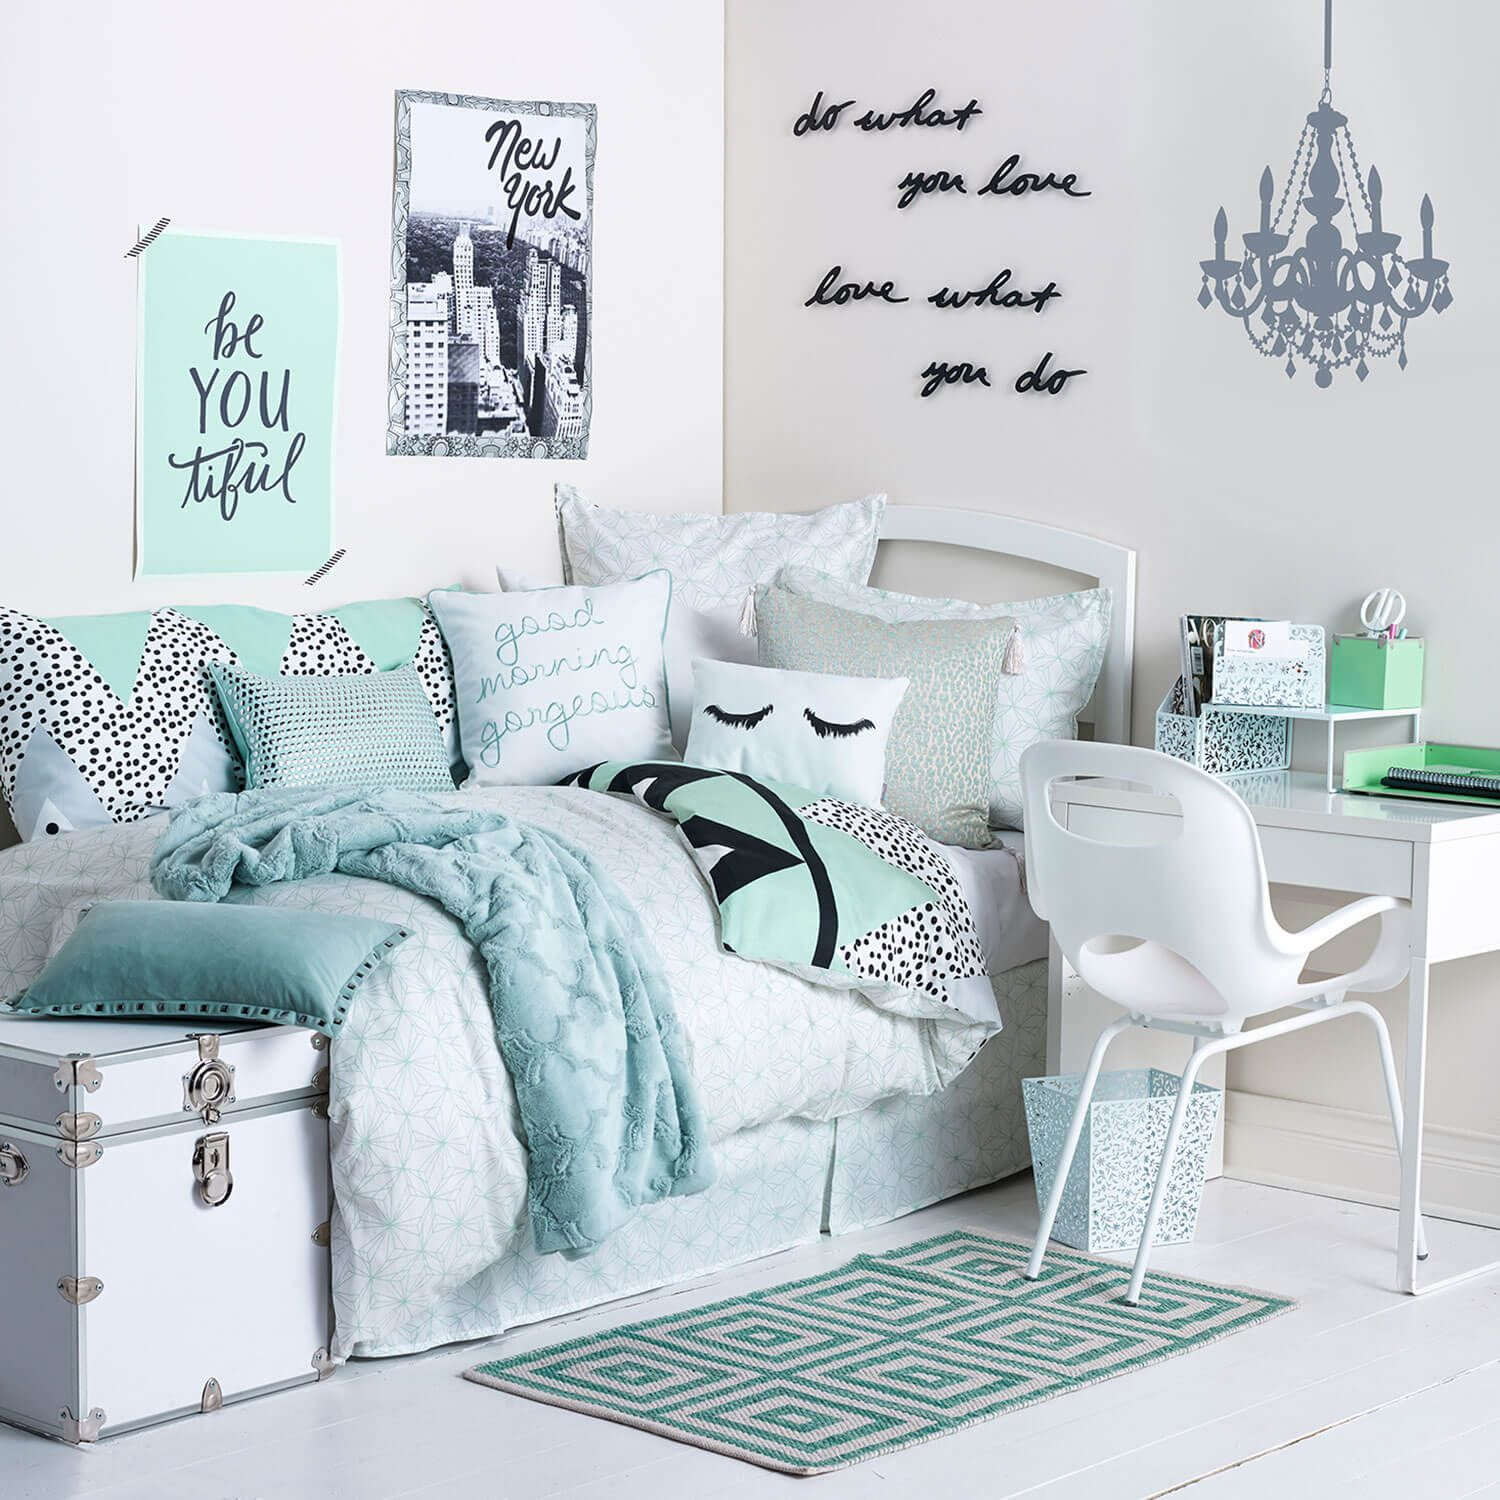 Uptown Girl Room available on dormifycom dorm bedding loves